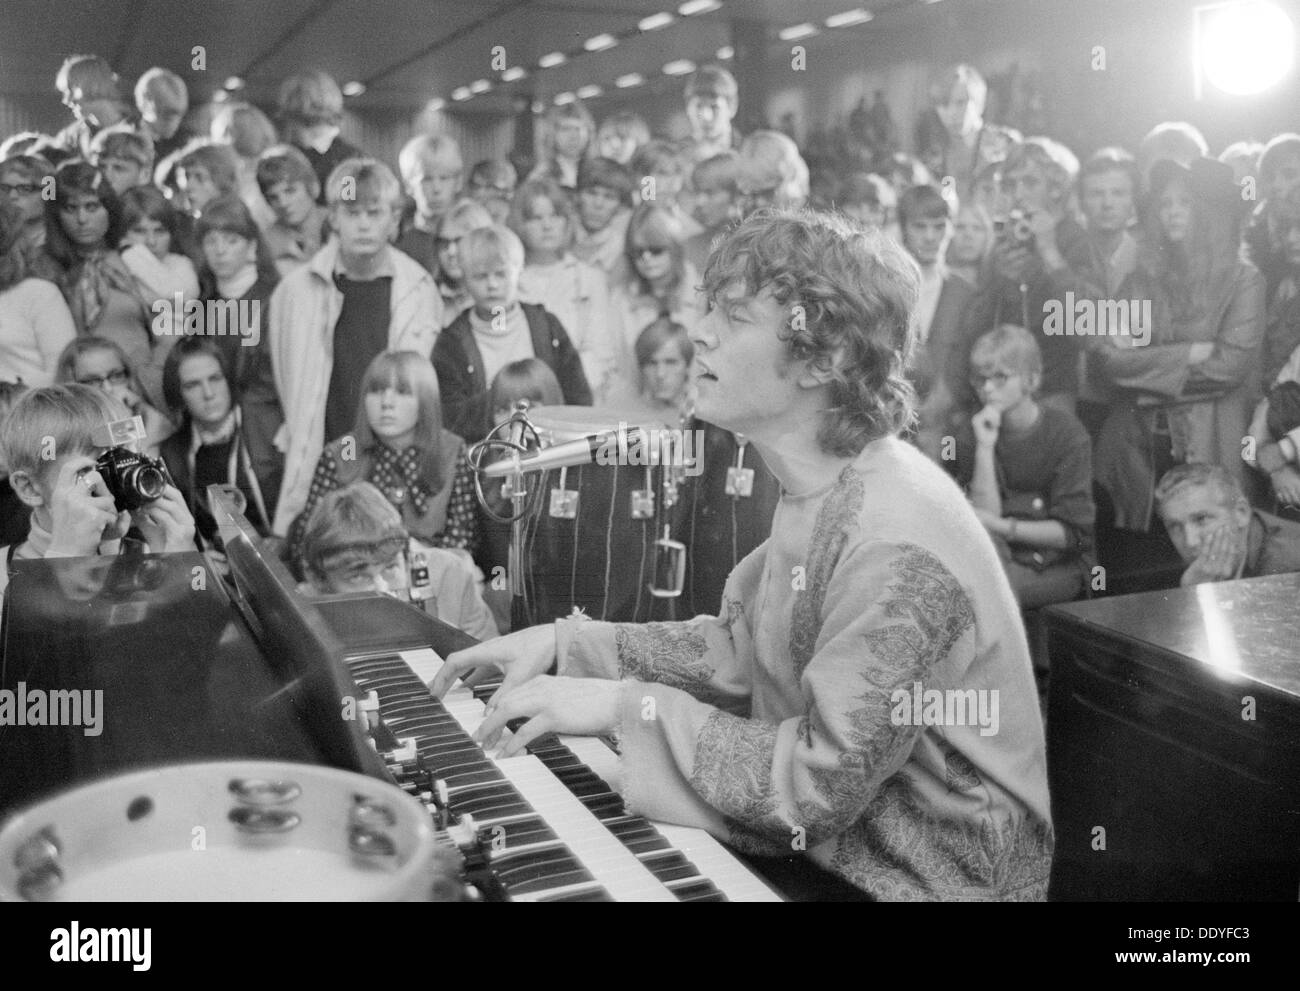 Steve Winwood, lead singer with Traffic, in concert at Landskrona, Sweden, 1967. From the Landskrona Museum Collection. - Stock Image